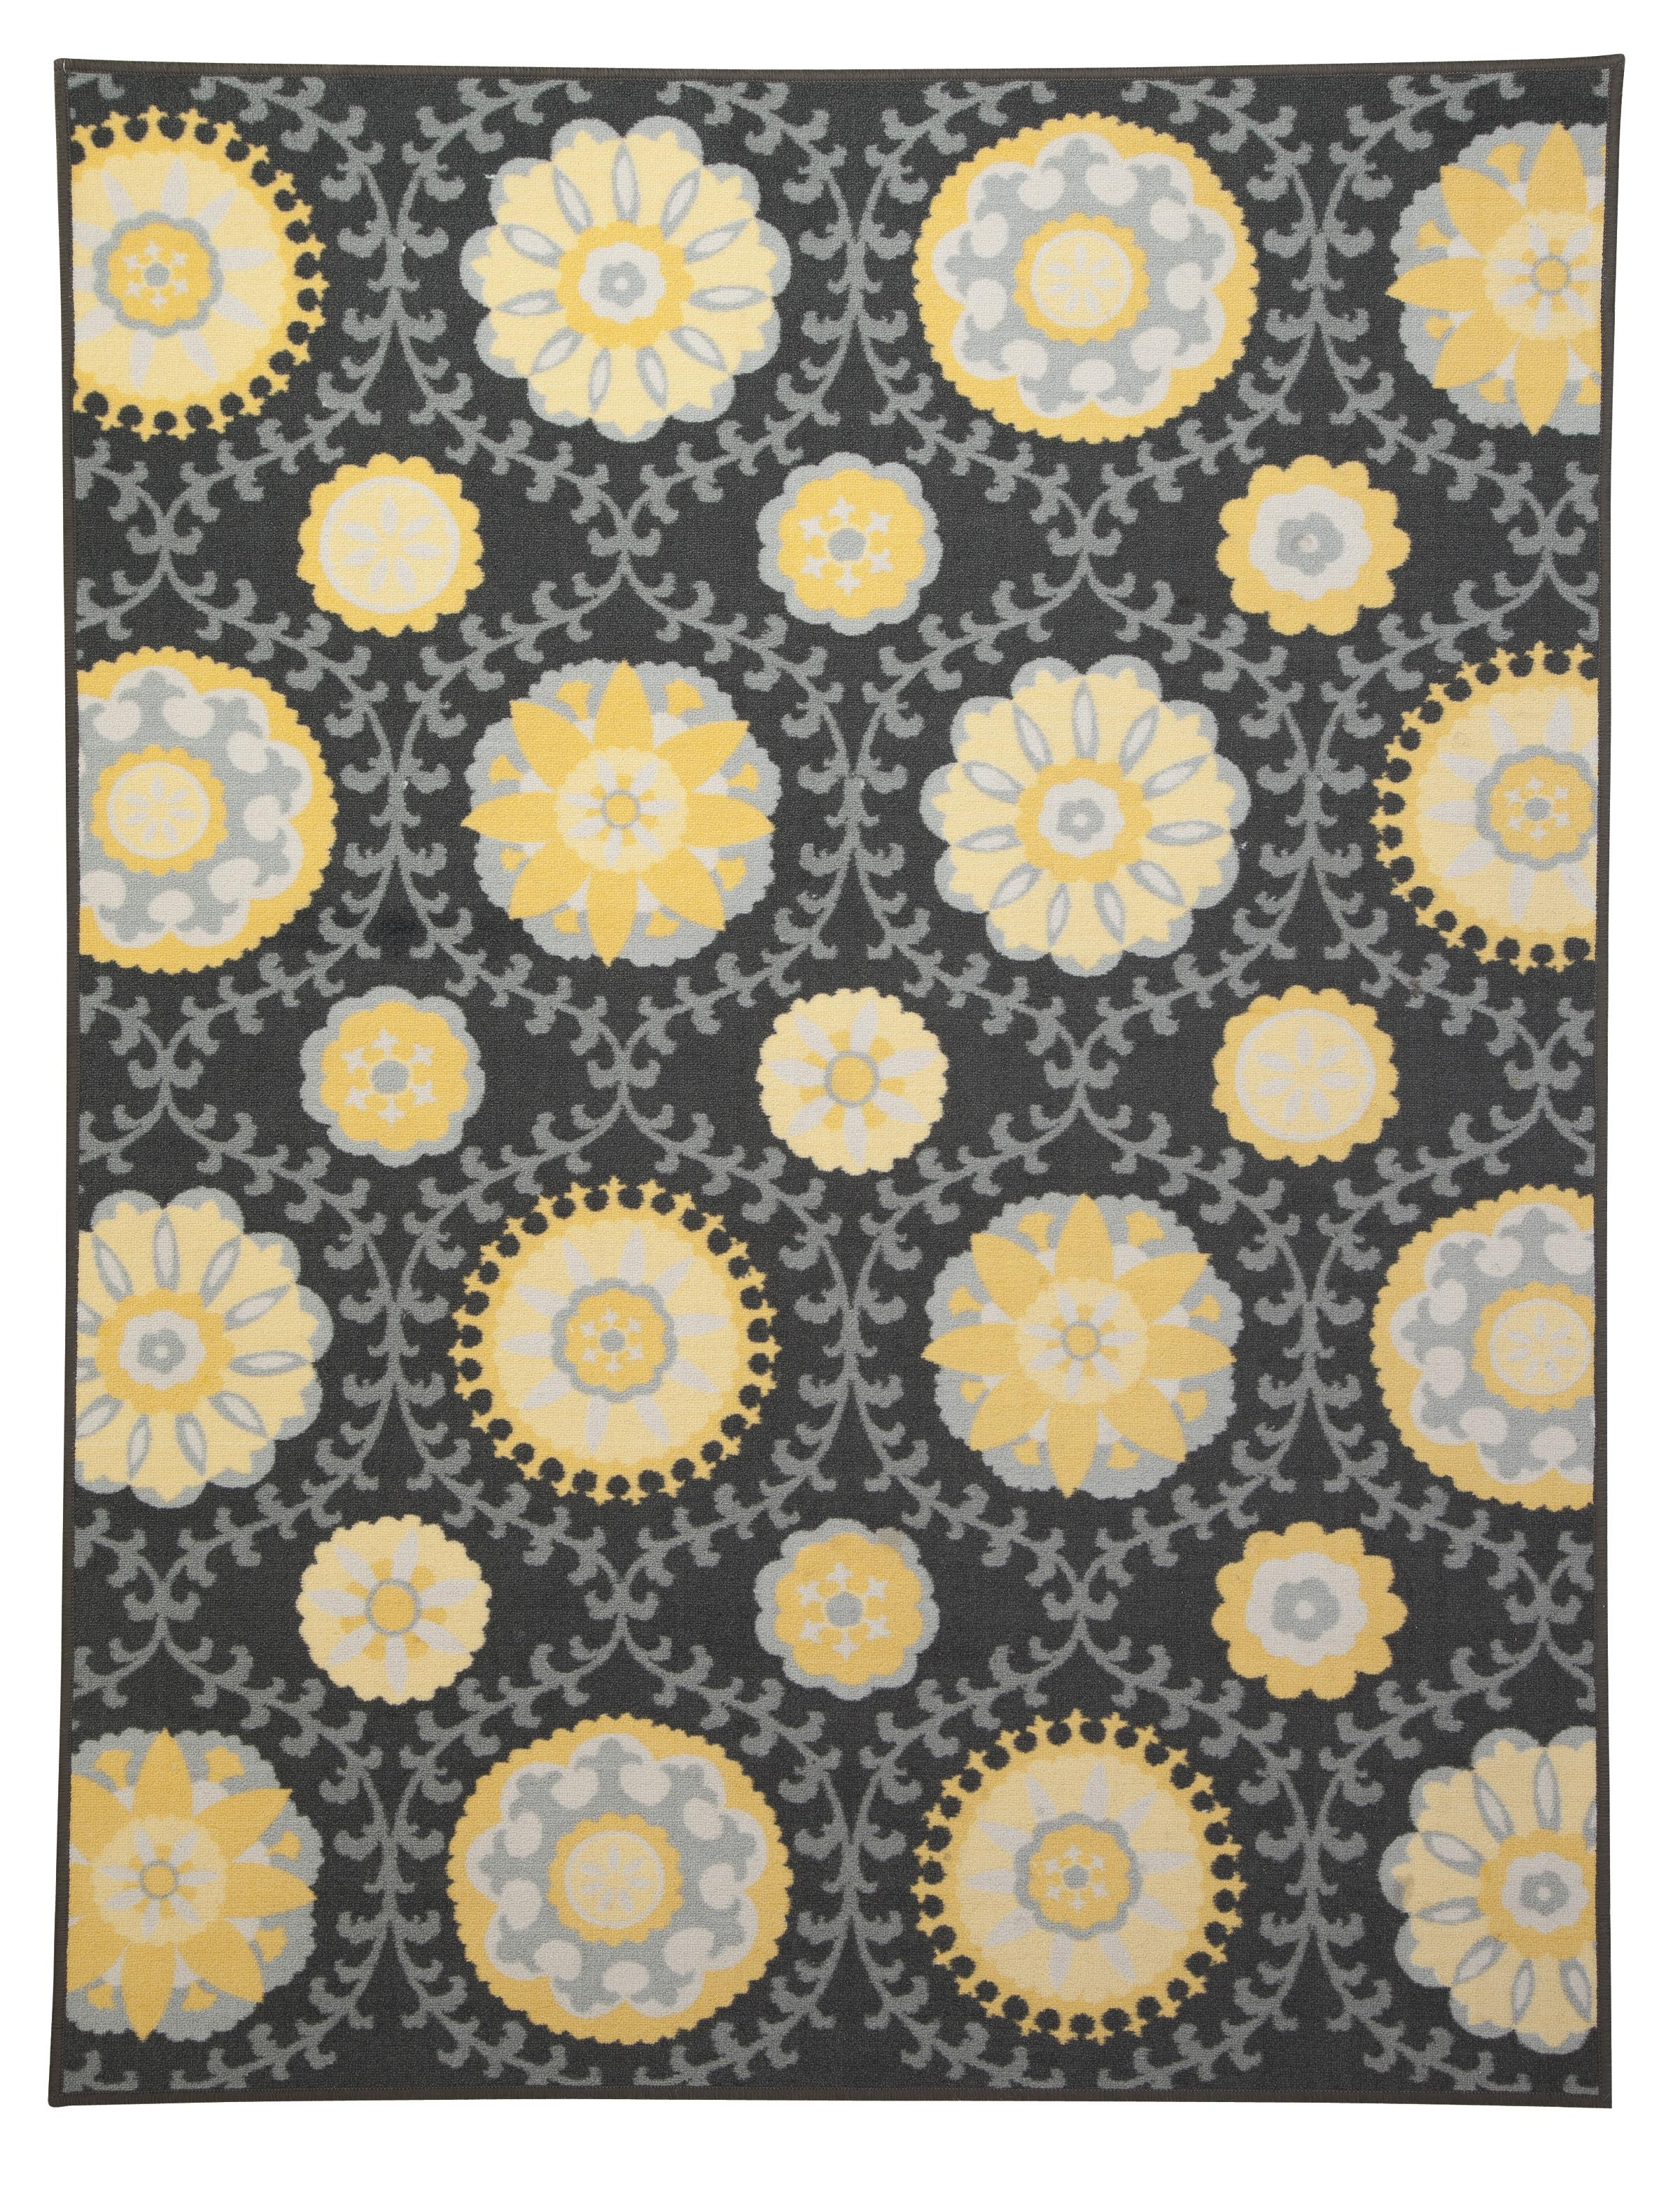 Signature Design by Ashley Transitional Area Rugs Jaget Gray/Green Medium Rug - Item Number: R329002